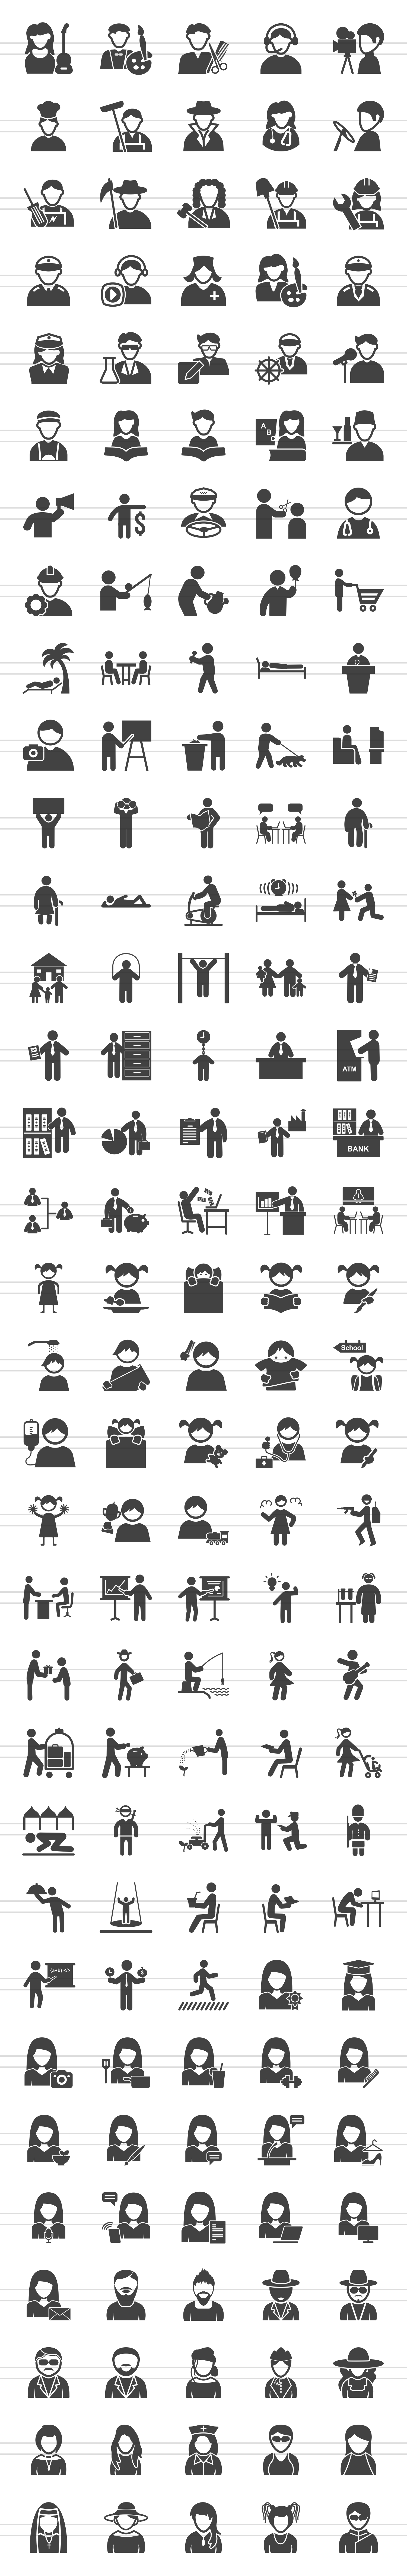 166 People Glyph Icons example image 2